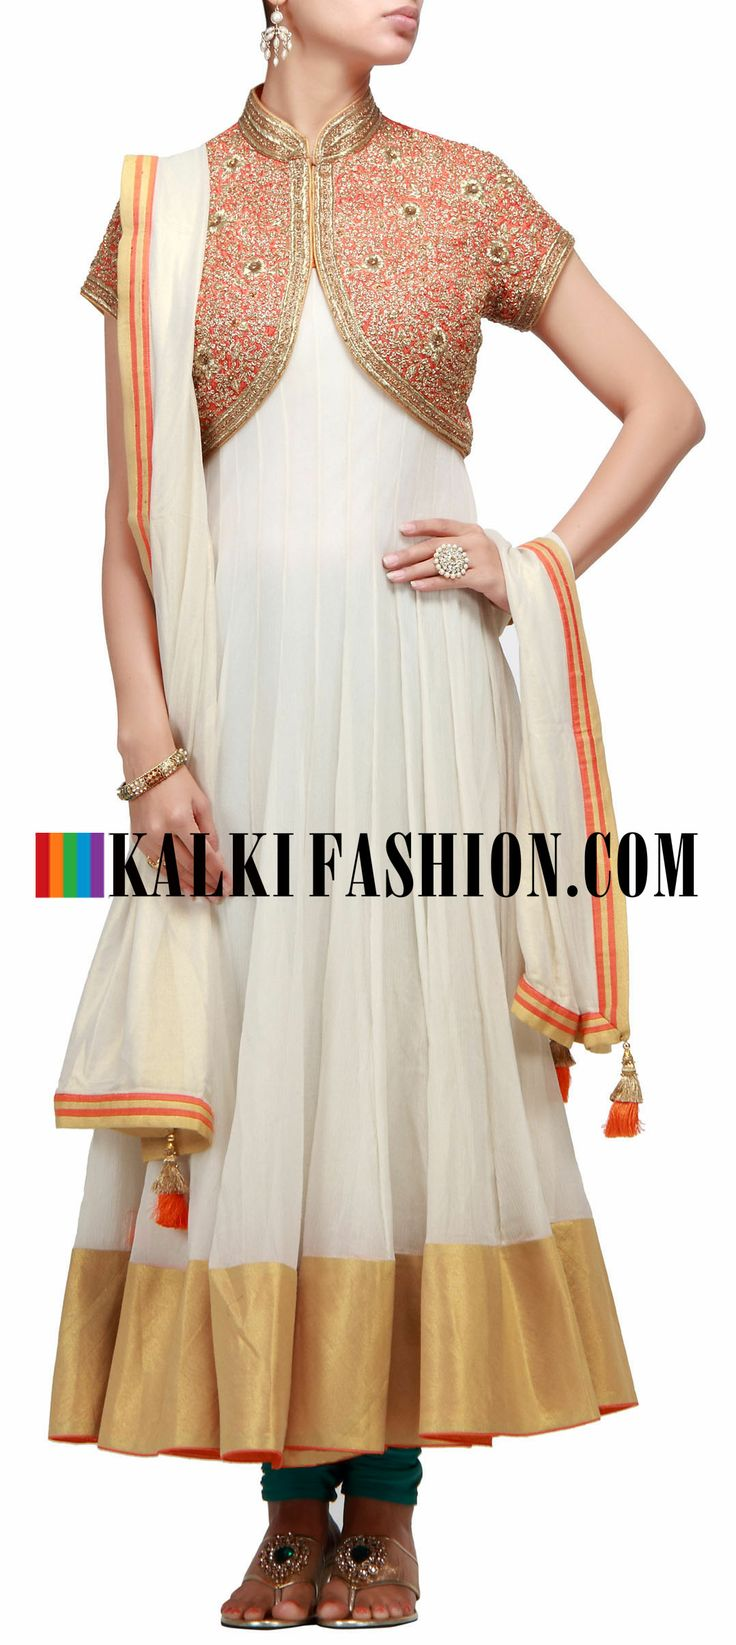 Buy Online from the link below. We ship worldwide (Free Shipping over US$100) http://www.kalkifashion.com/anarkali-suit-in-cream-with-shrug-in-zardosi-embroidery.html Anarkali suit in cream with shrug in zardosi embroidery